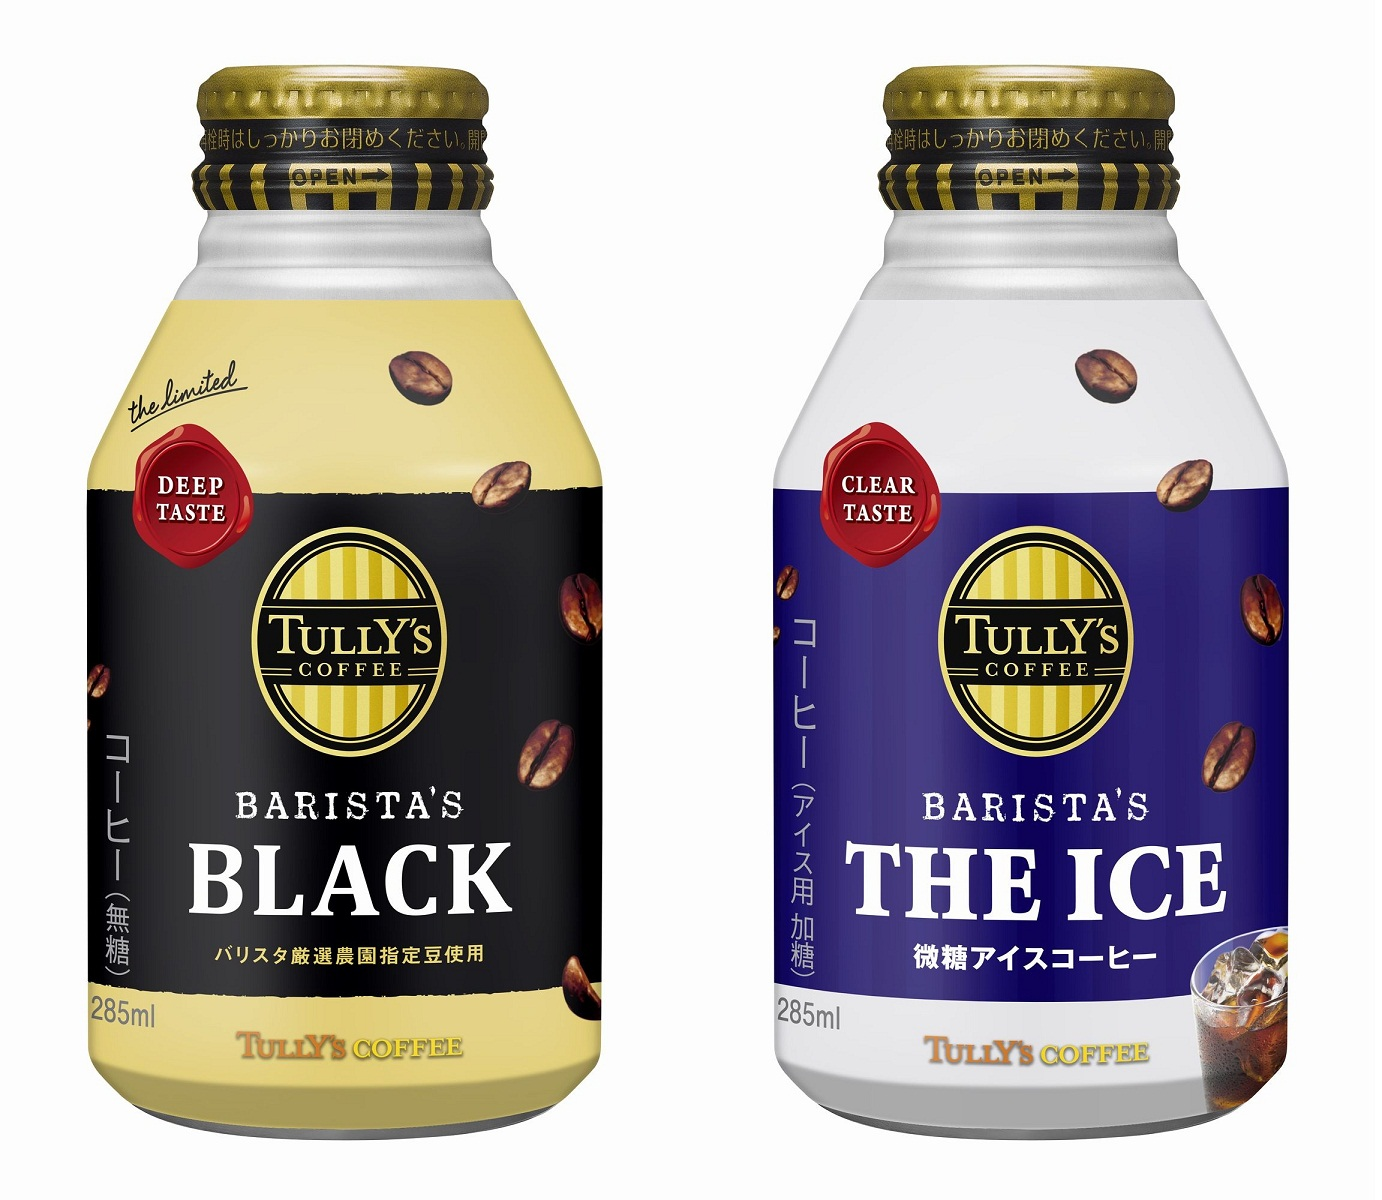 「TULLY'S COFFEE BARISTA'S BLACK」、「同 THE ICE」